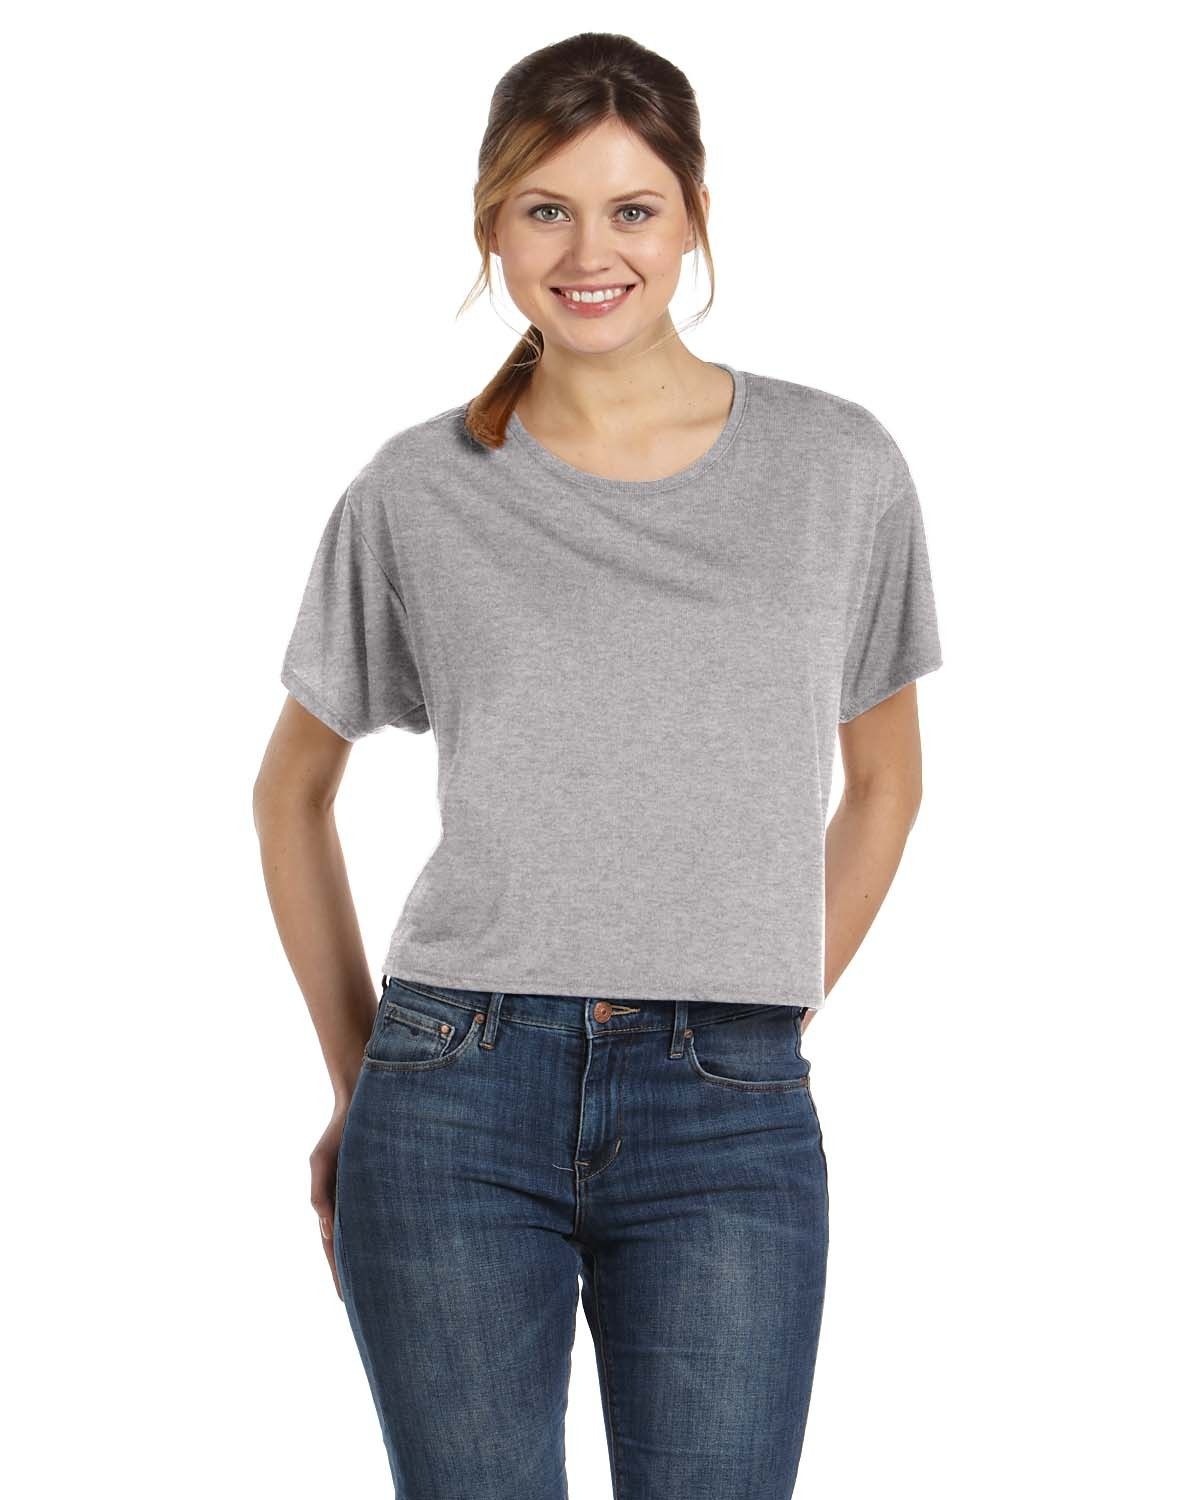 B8881 Bella + Canvas ATHLETIC HEATHER